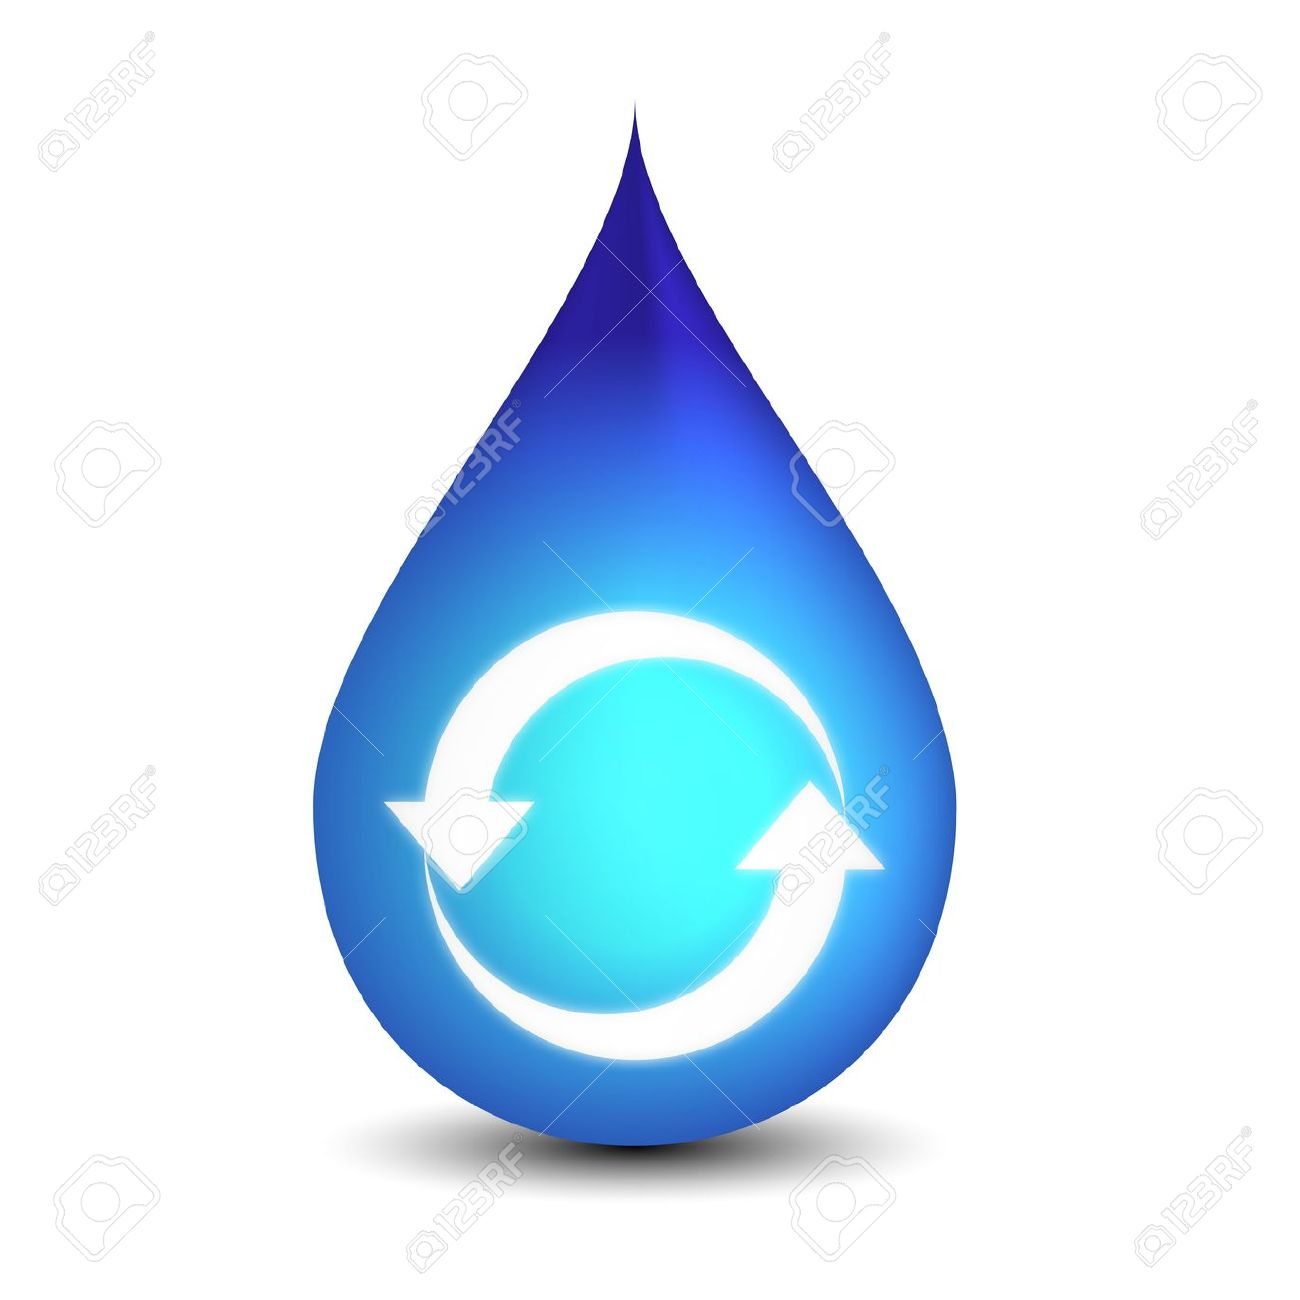 Conserve energy and water clipart.